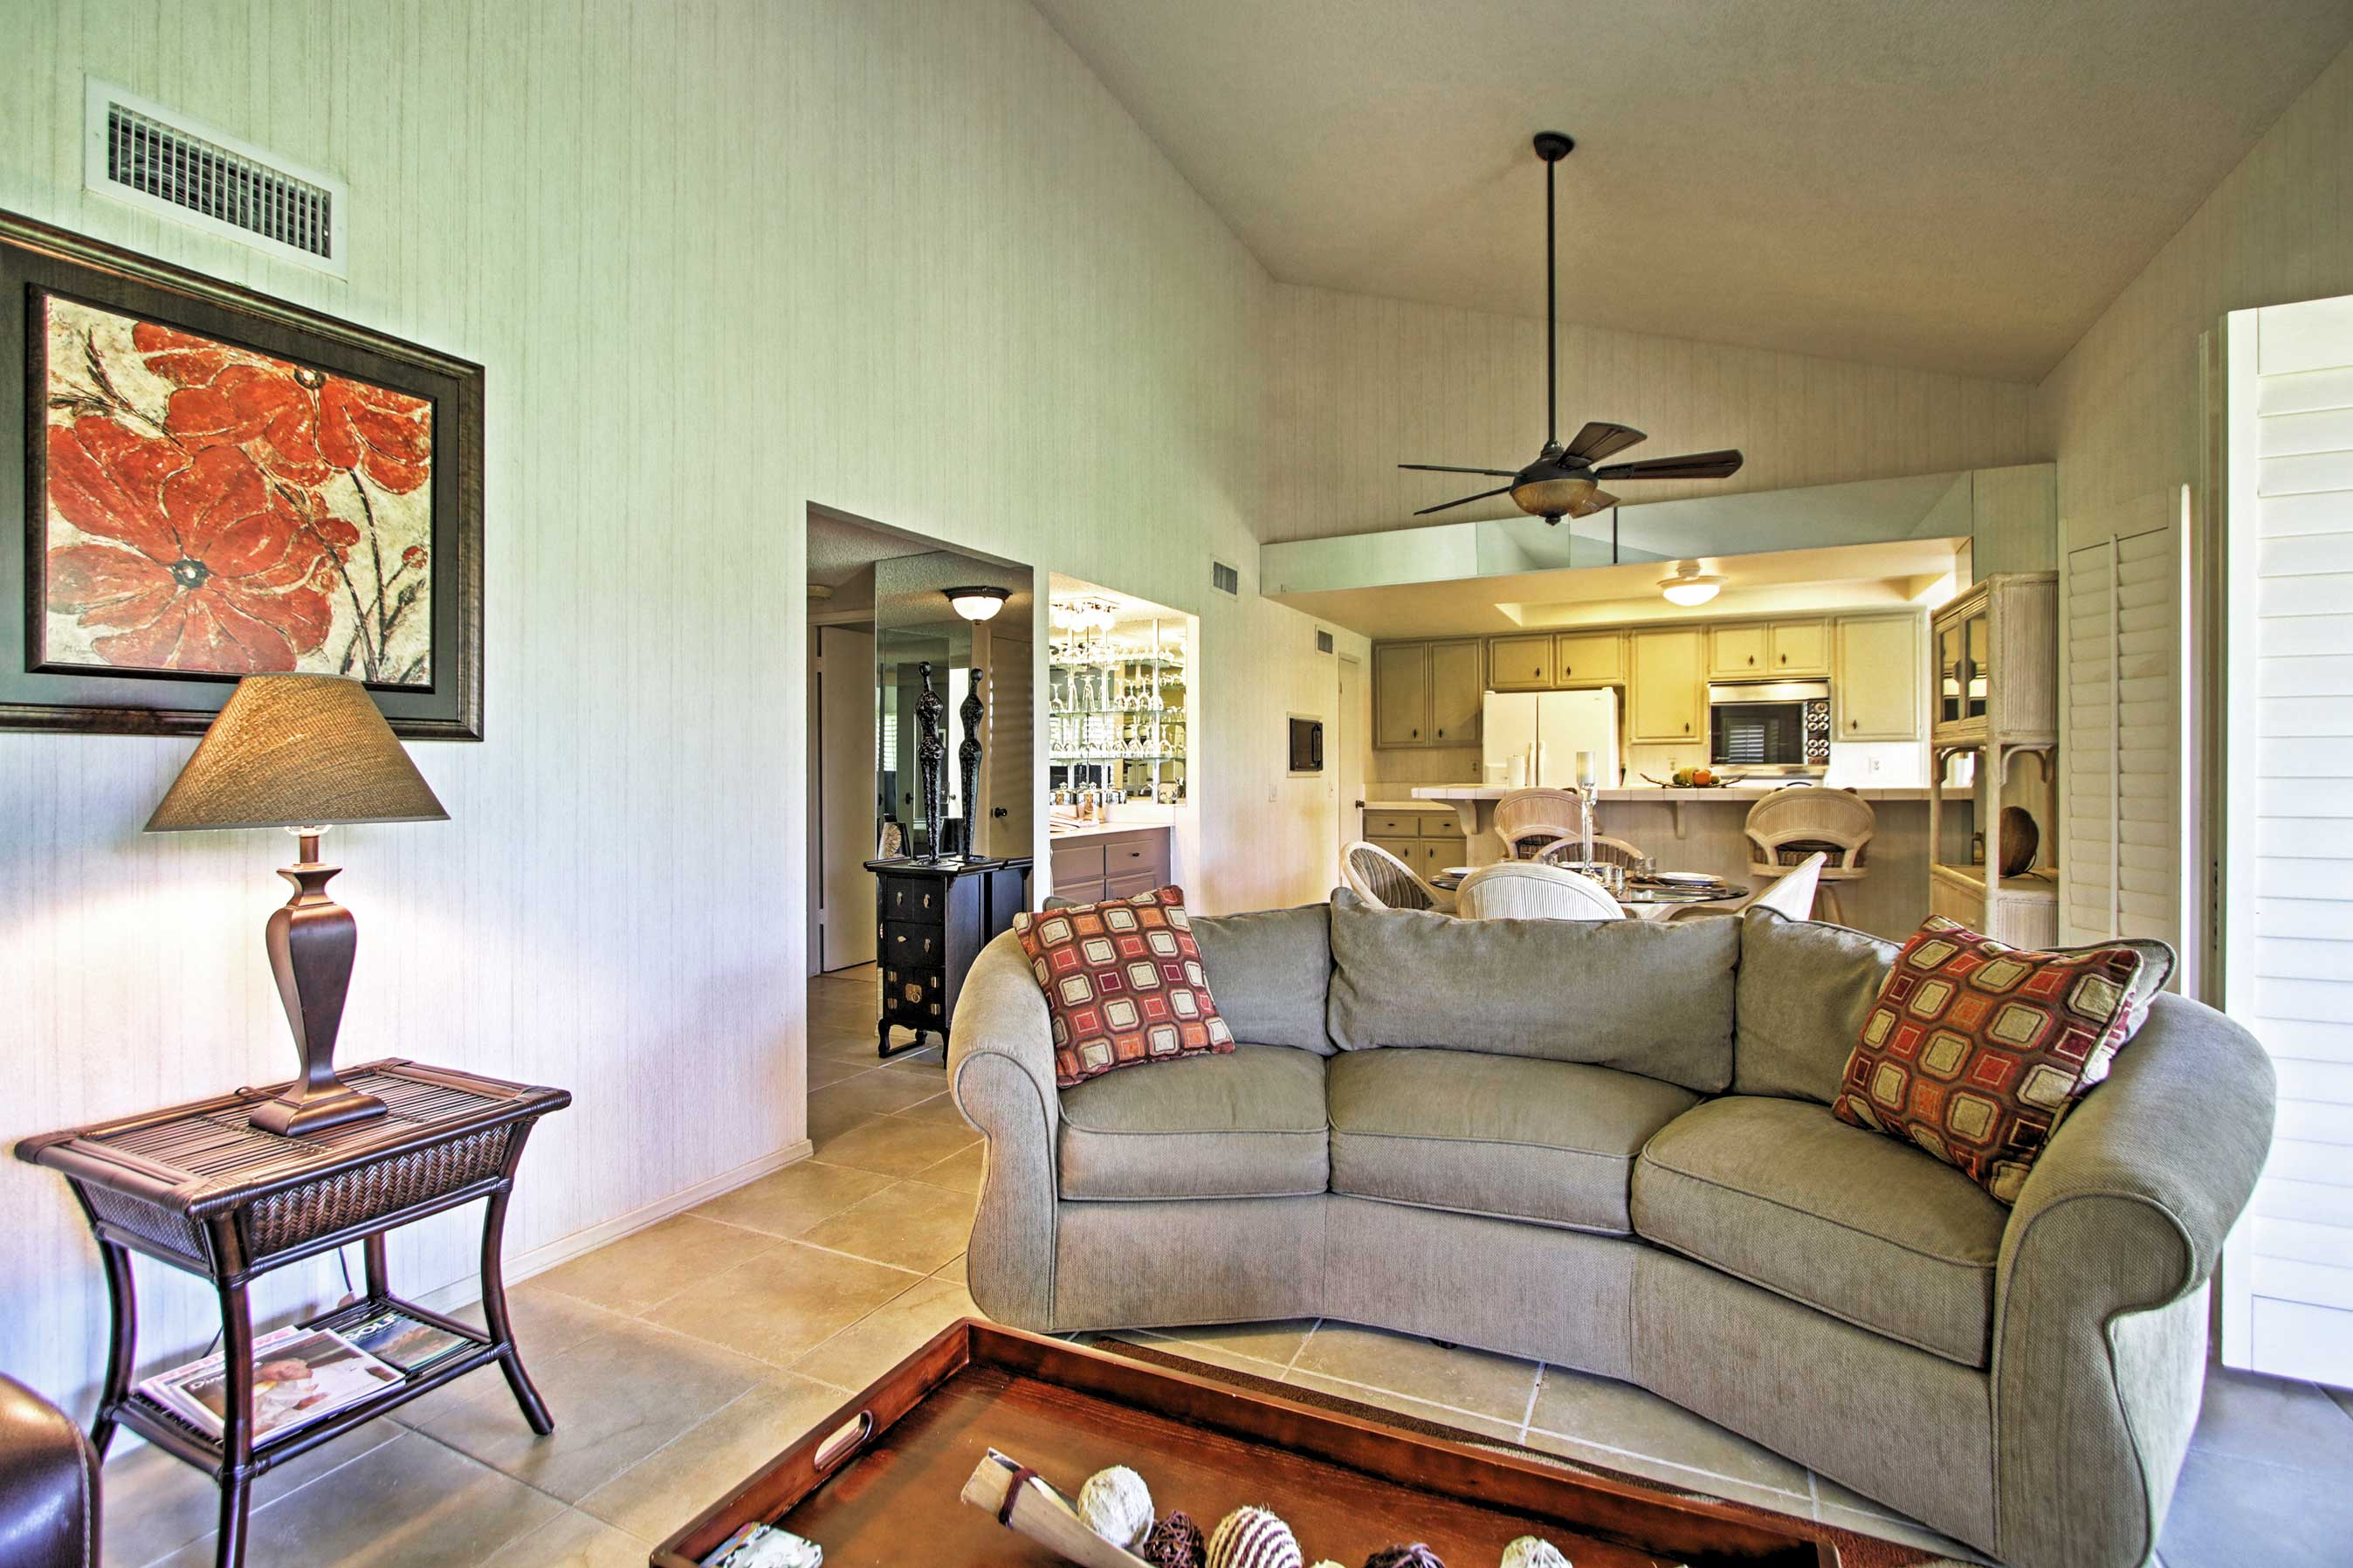 The open floor plan allows for easy communication with others.